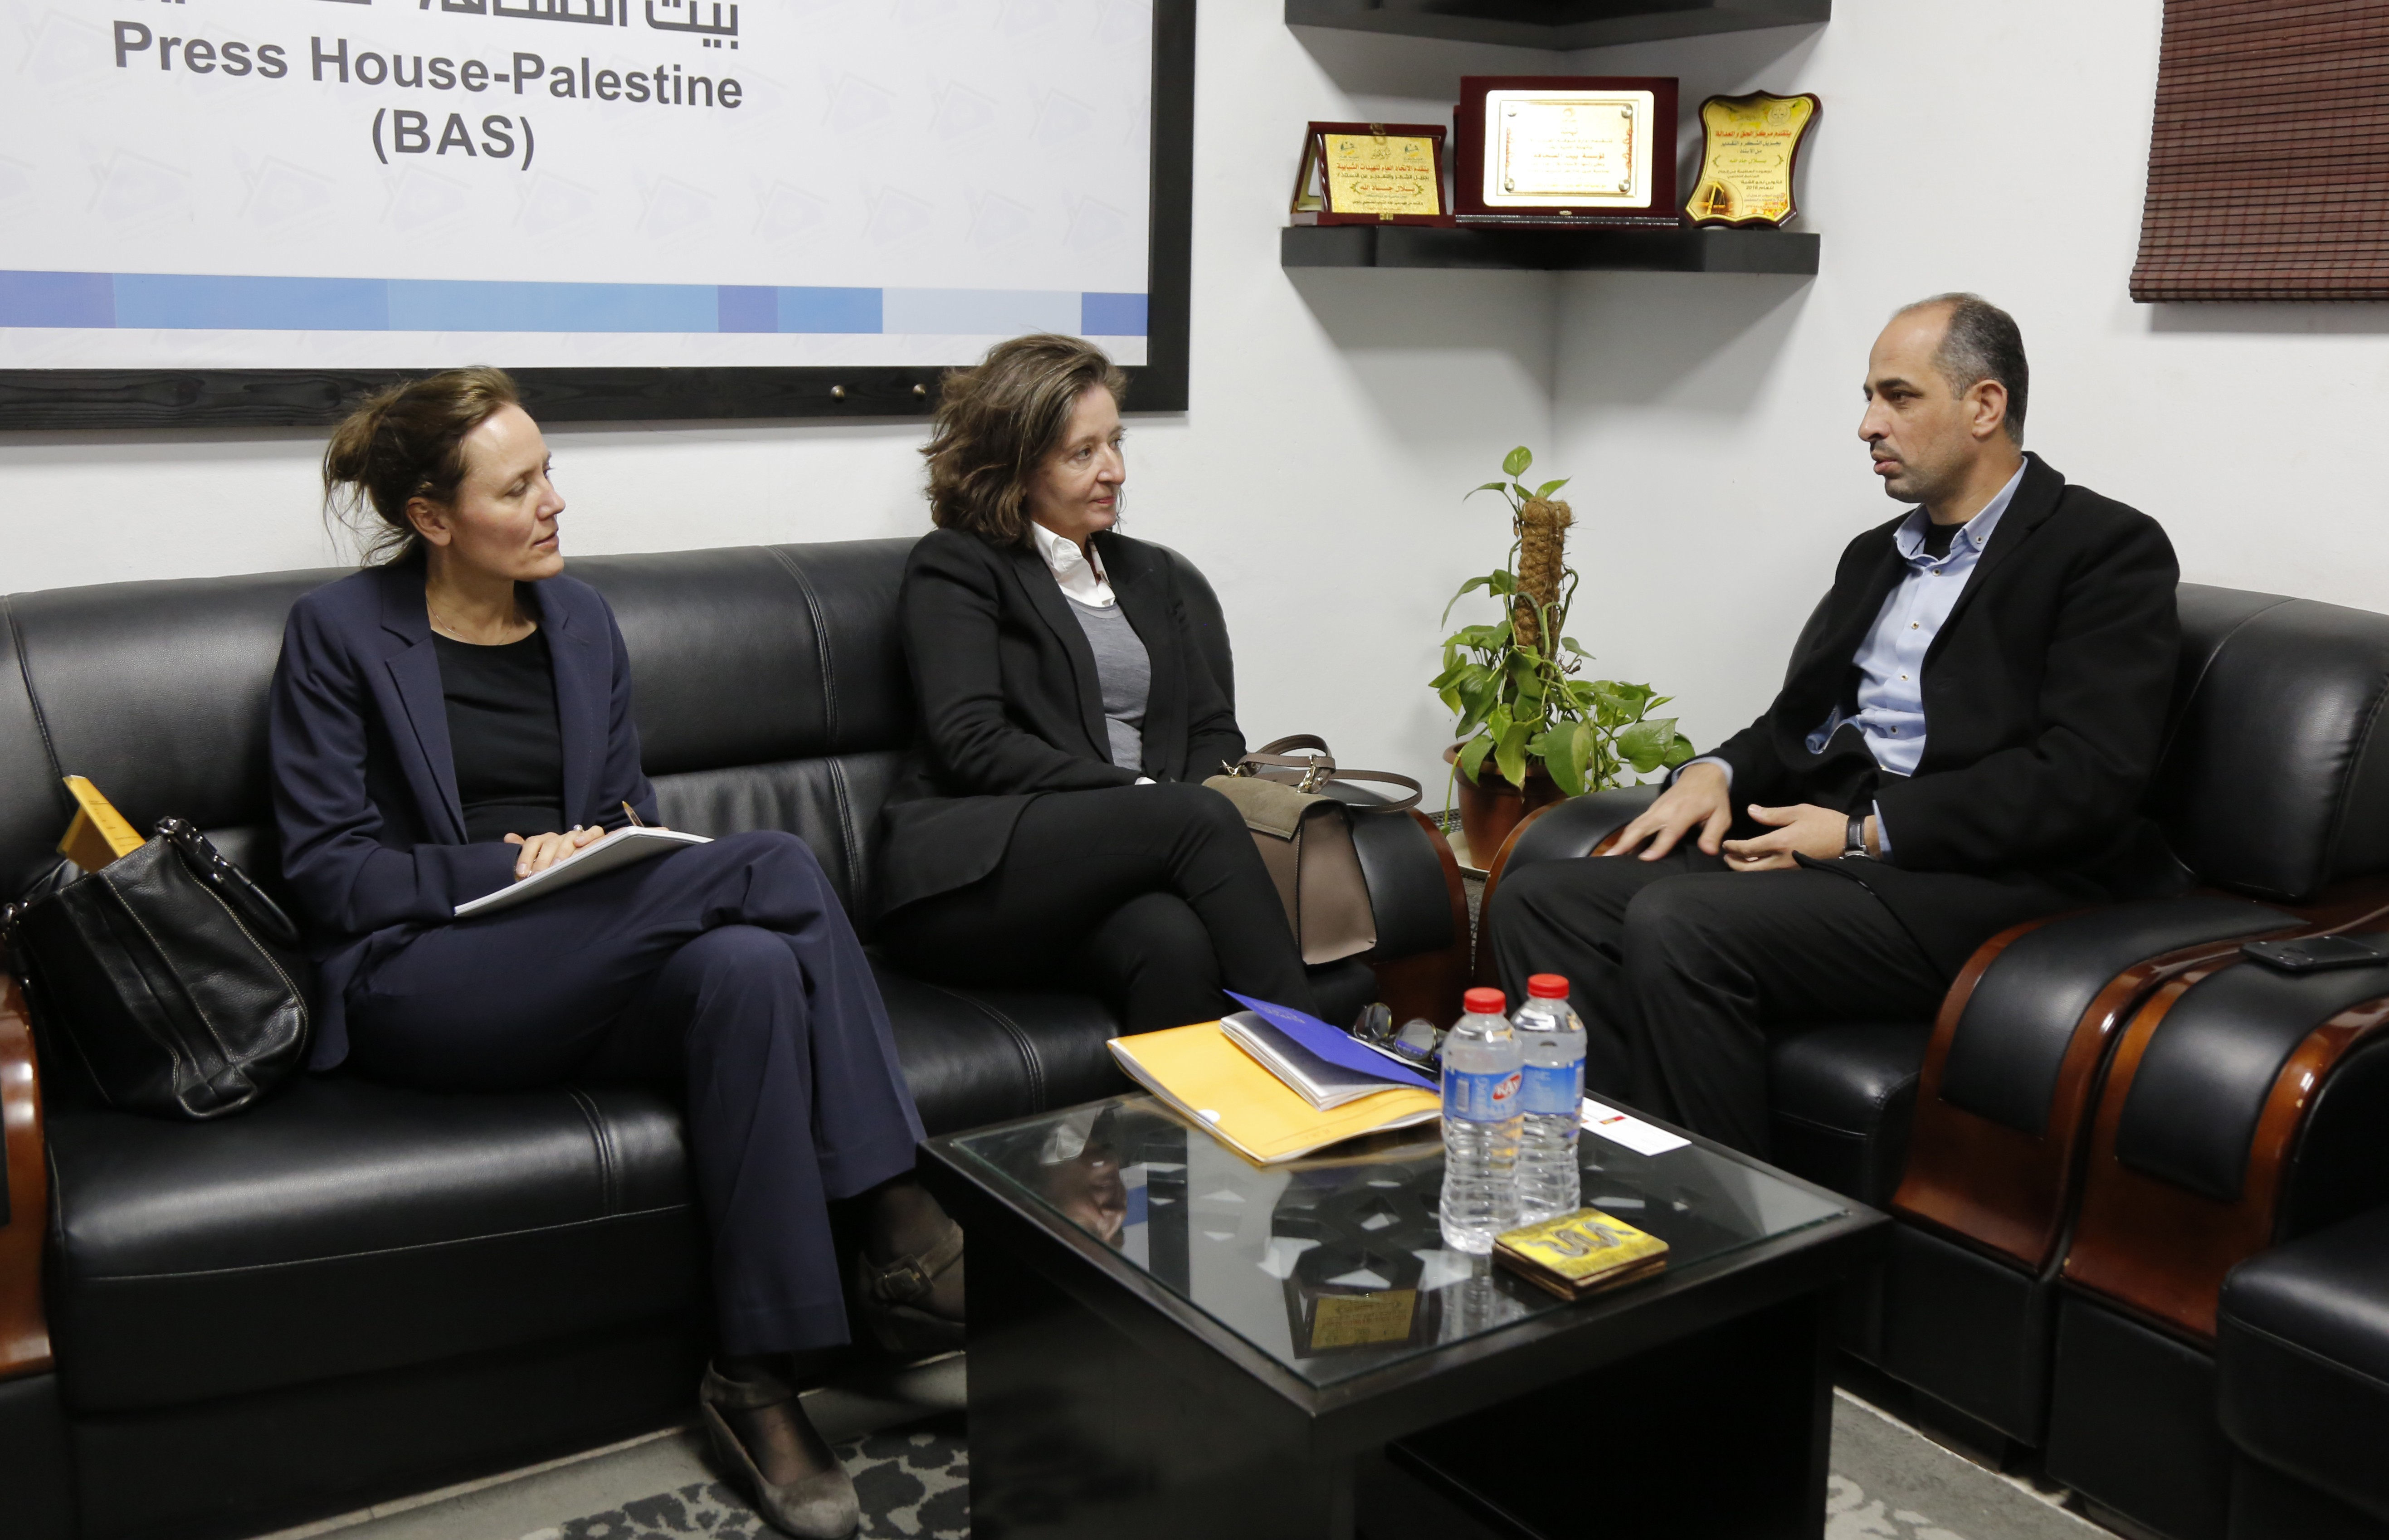 The Danish Consul General and the Deputy Consul visit the Press House